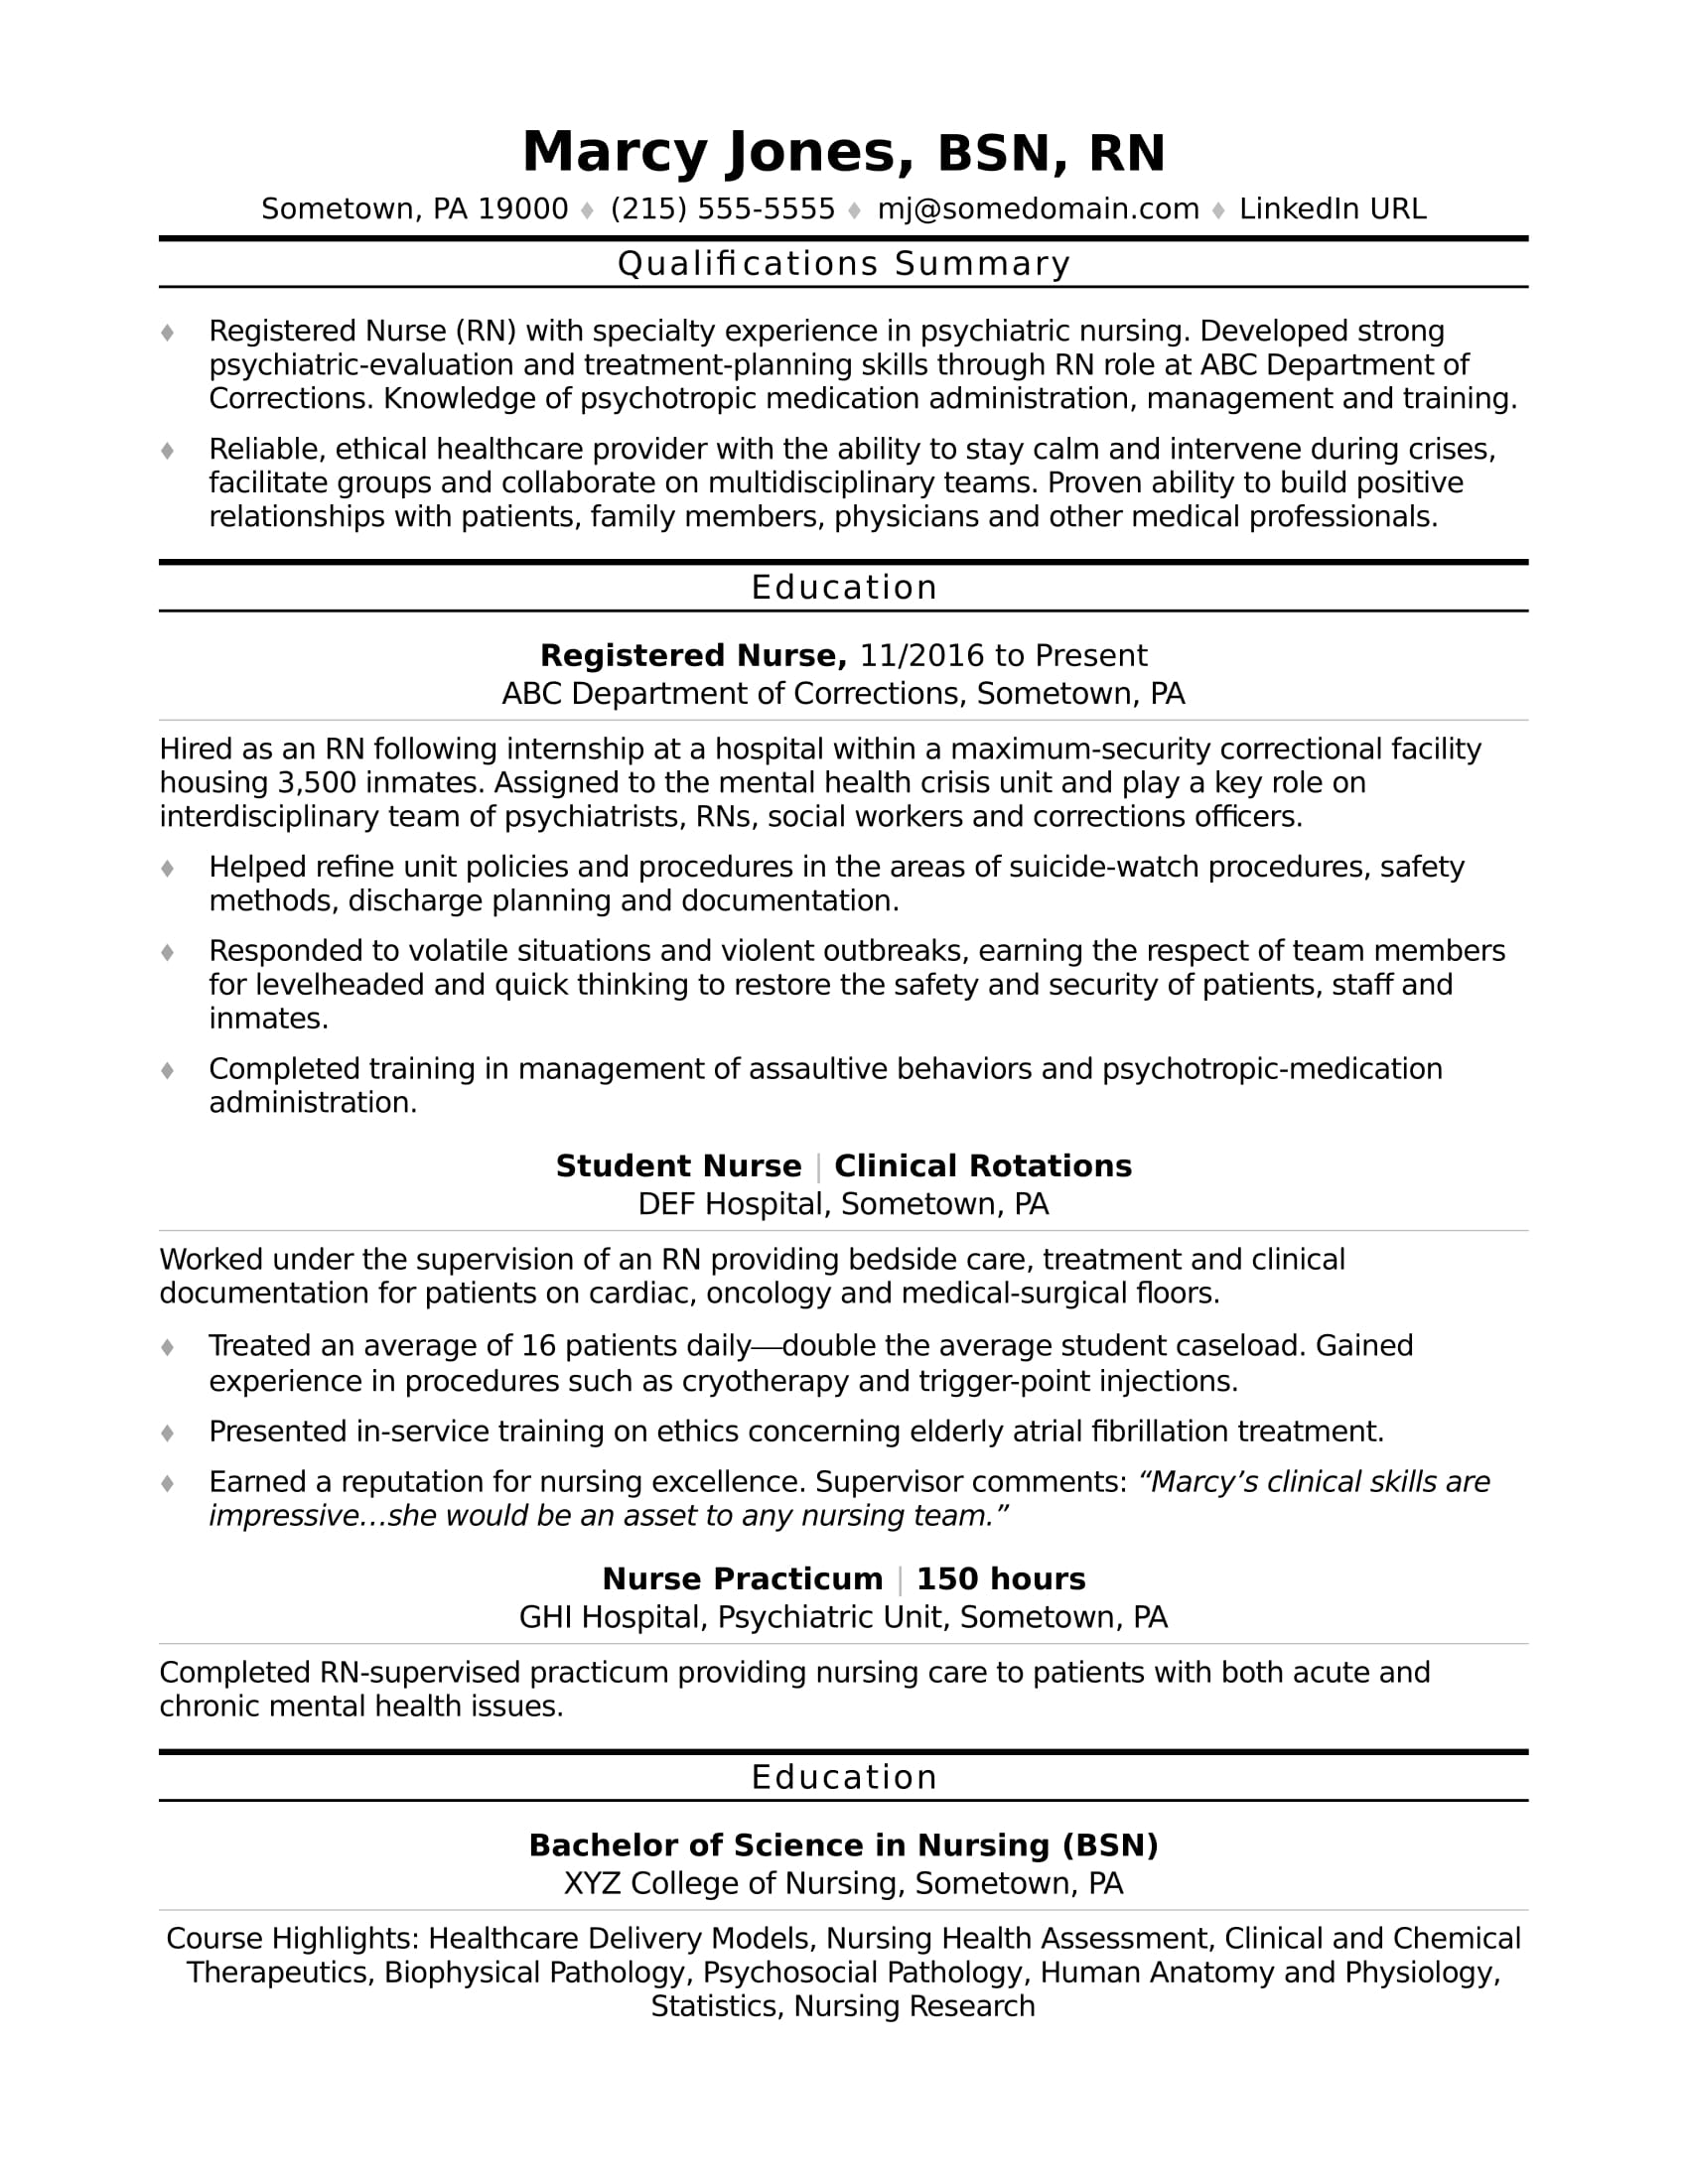 registered nurse rn resume sample monster new examples entry level computer science latex Resume New Nurse Resume Examples